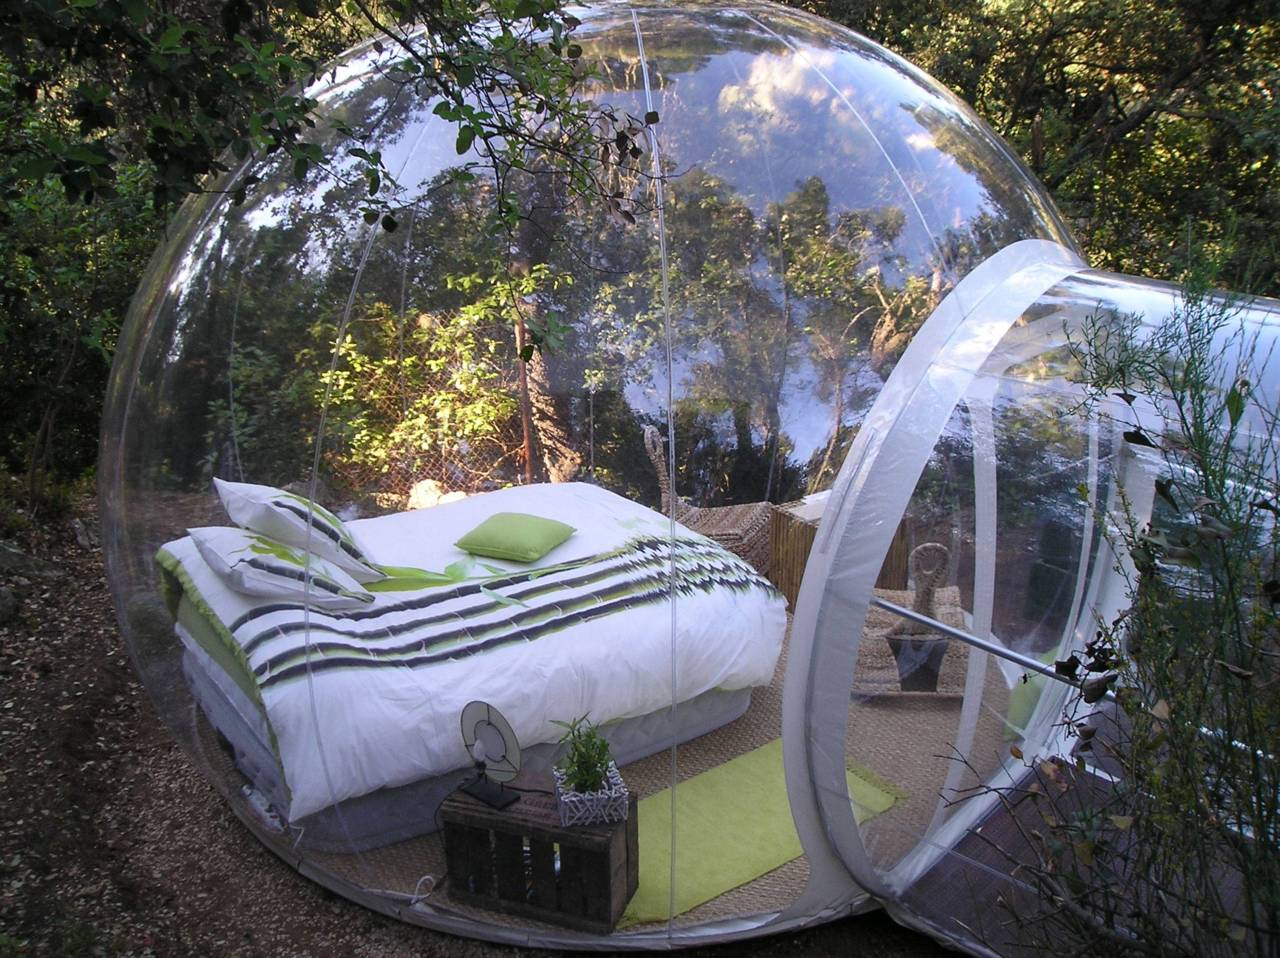 And Speaking Of Glass Encased Bedrooms, Hereu0027s Another One. This One Was  Designed In A Transparent Bubble Surrounded By Nature And Vegetation.